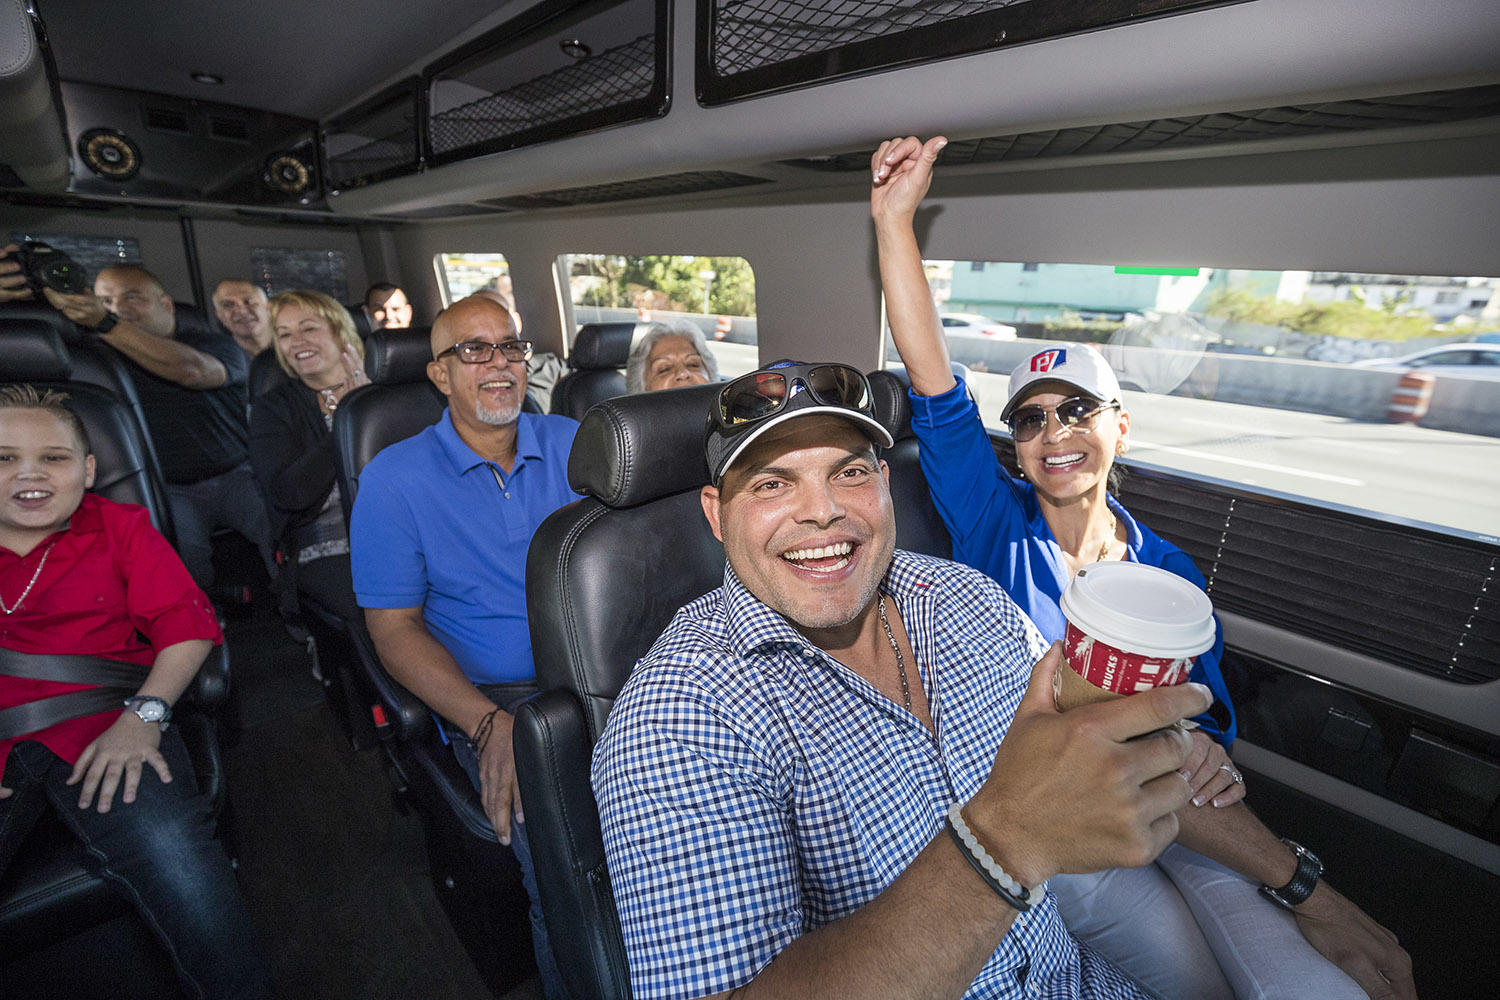 Iván Rodríguez (front) begins his celebratory return to Puerto Rico with his family, traveling across the island via bus. (Jean Fruth / National Baseball Hall of Fame)